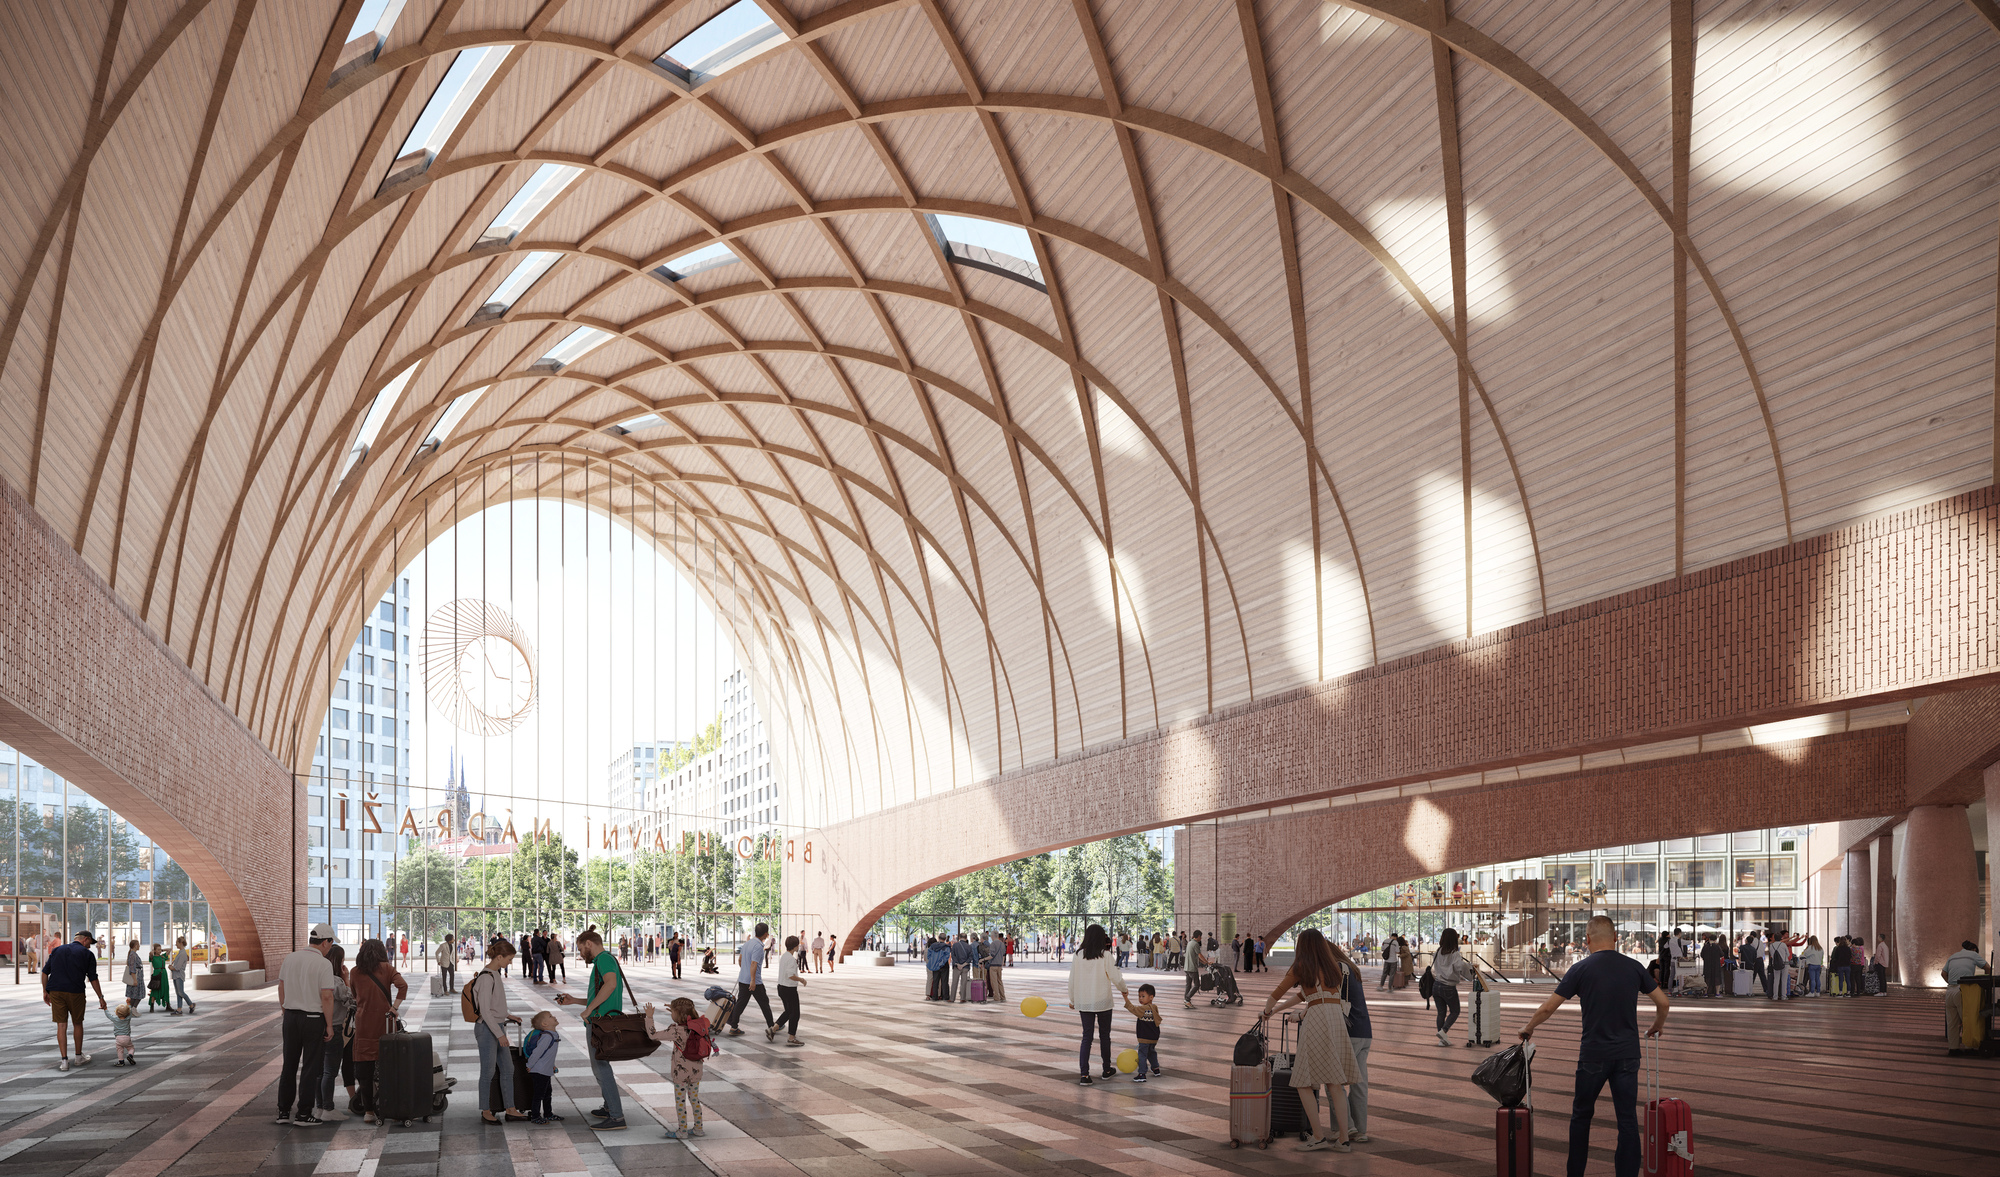 Benthem Crouwel + West 8 Win Competition for New Brno Main Station   ArchDaily